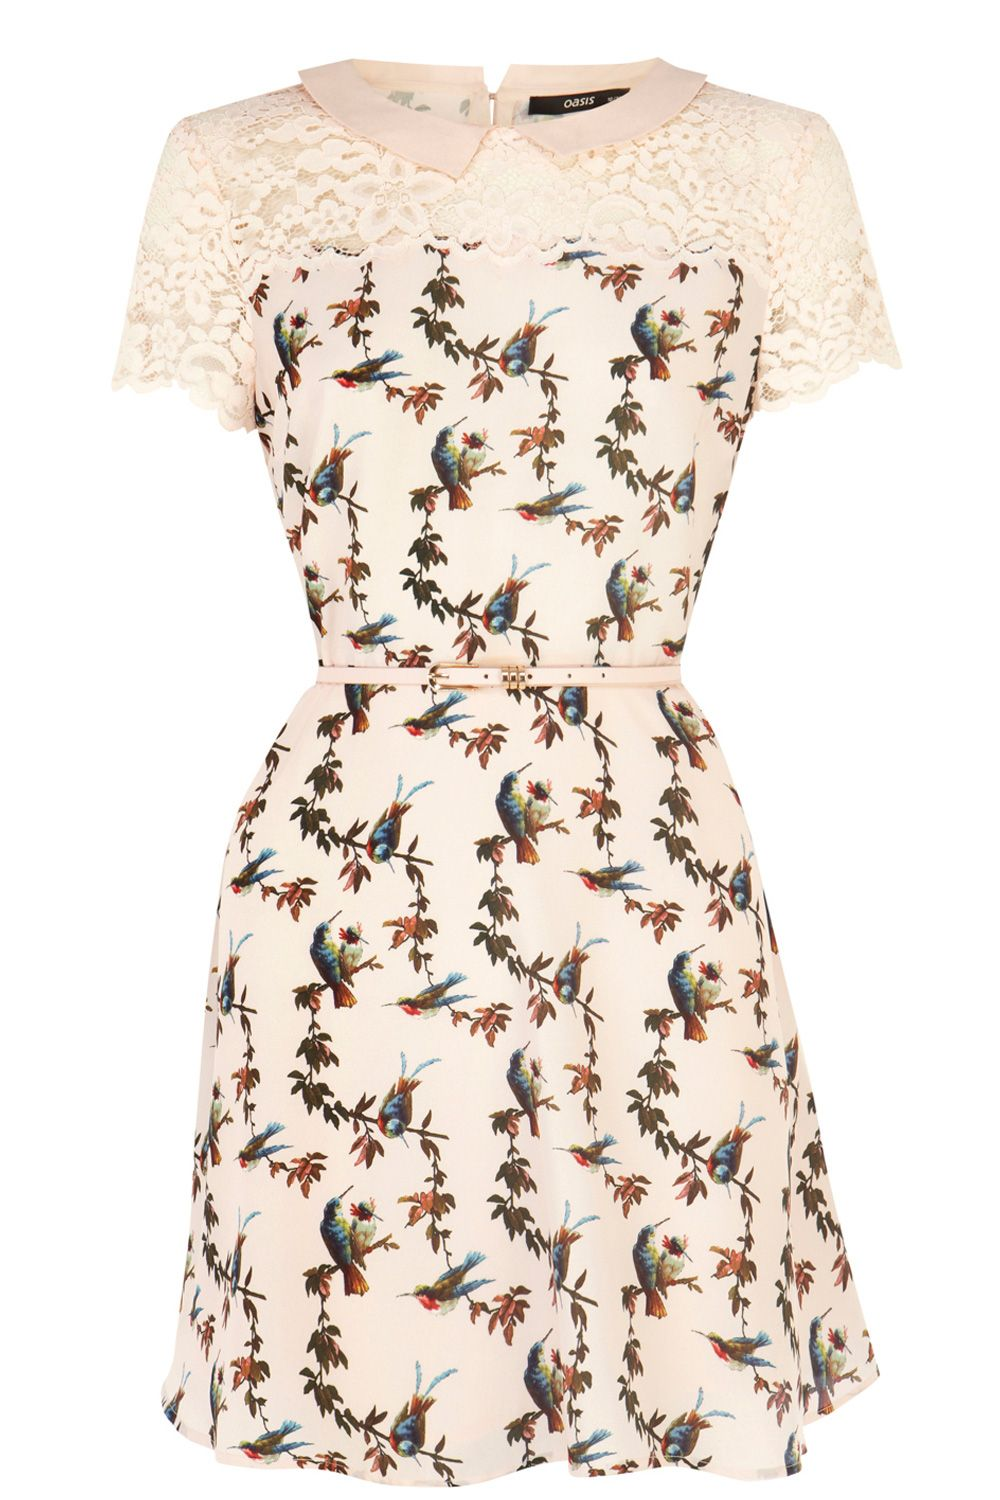 Bird lace trim skater dress